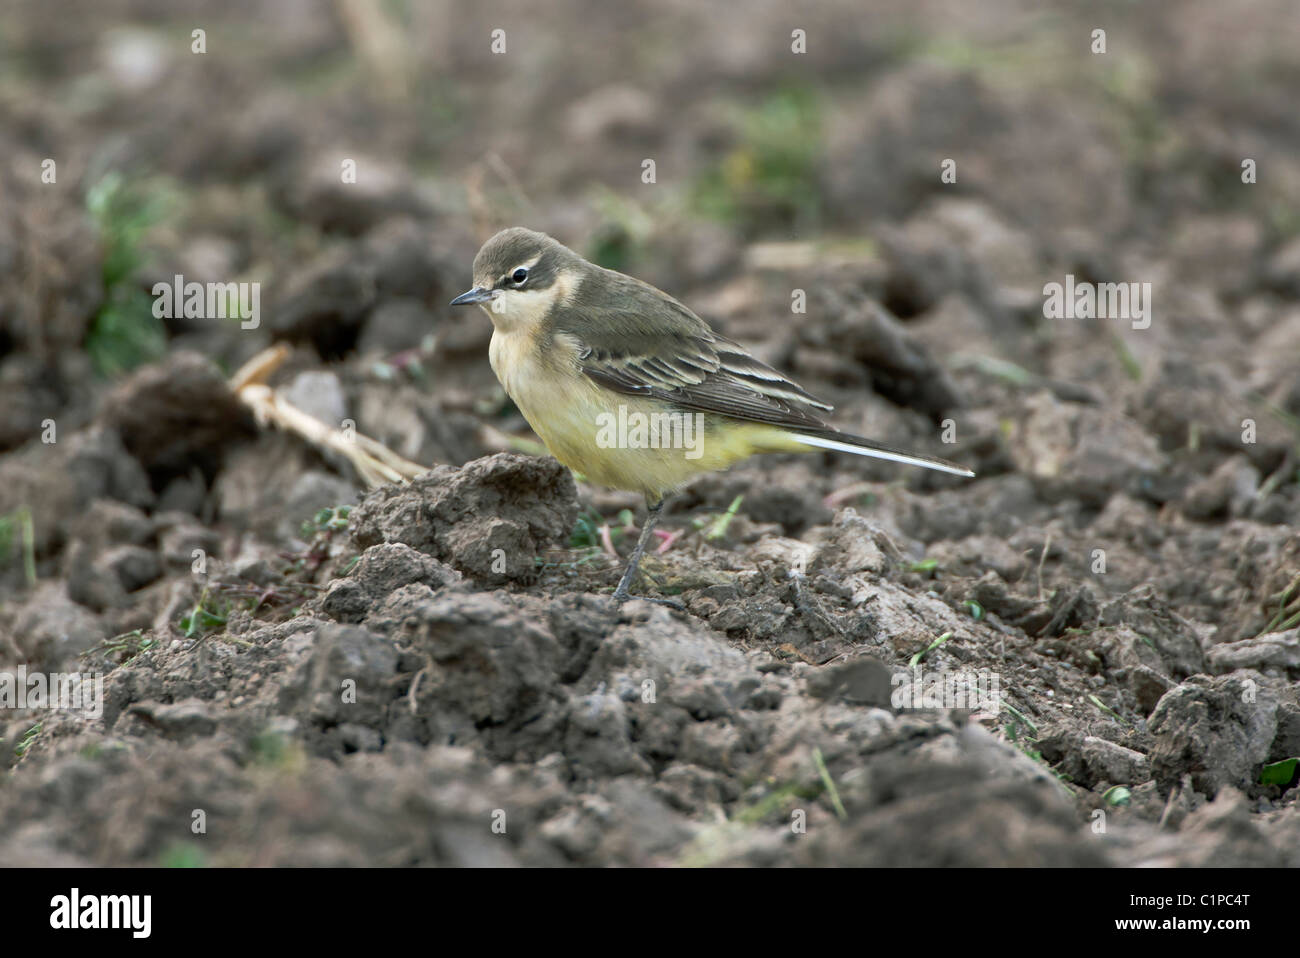 Black-headed Wagtail juvenile Motacilla flava feldegg Southern Turkey April - Stock Image